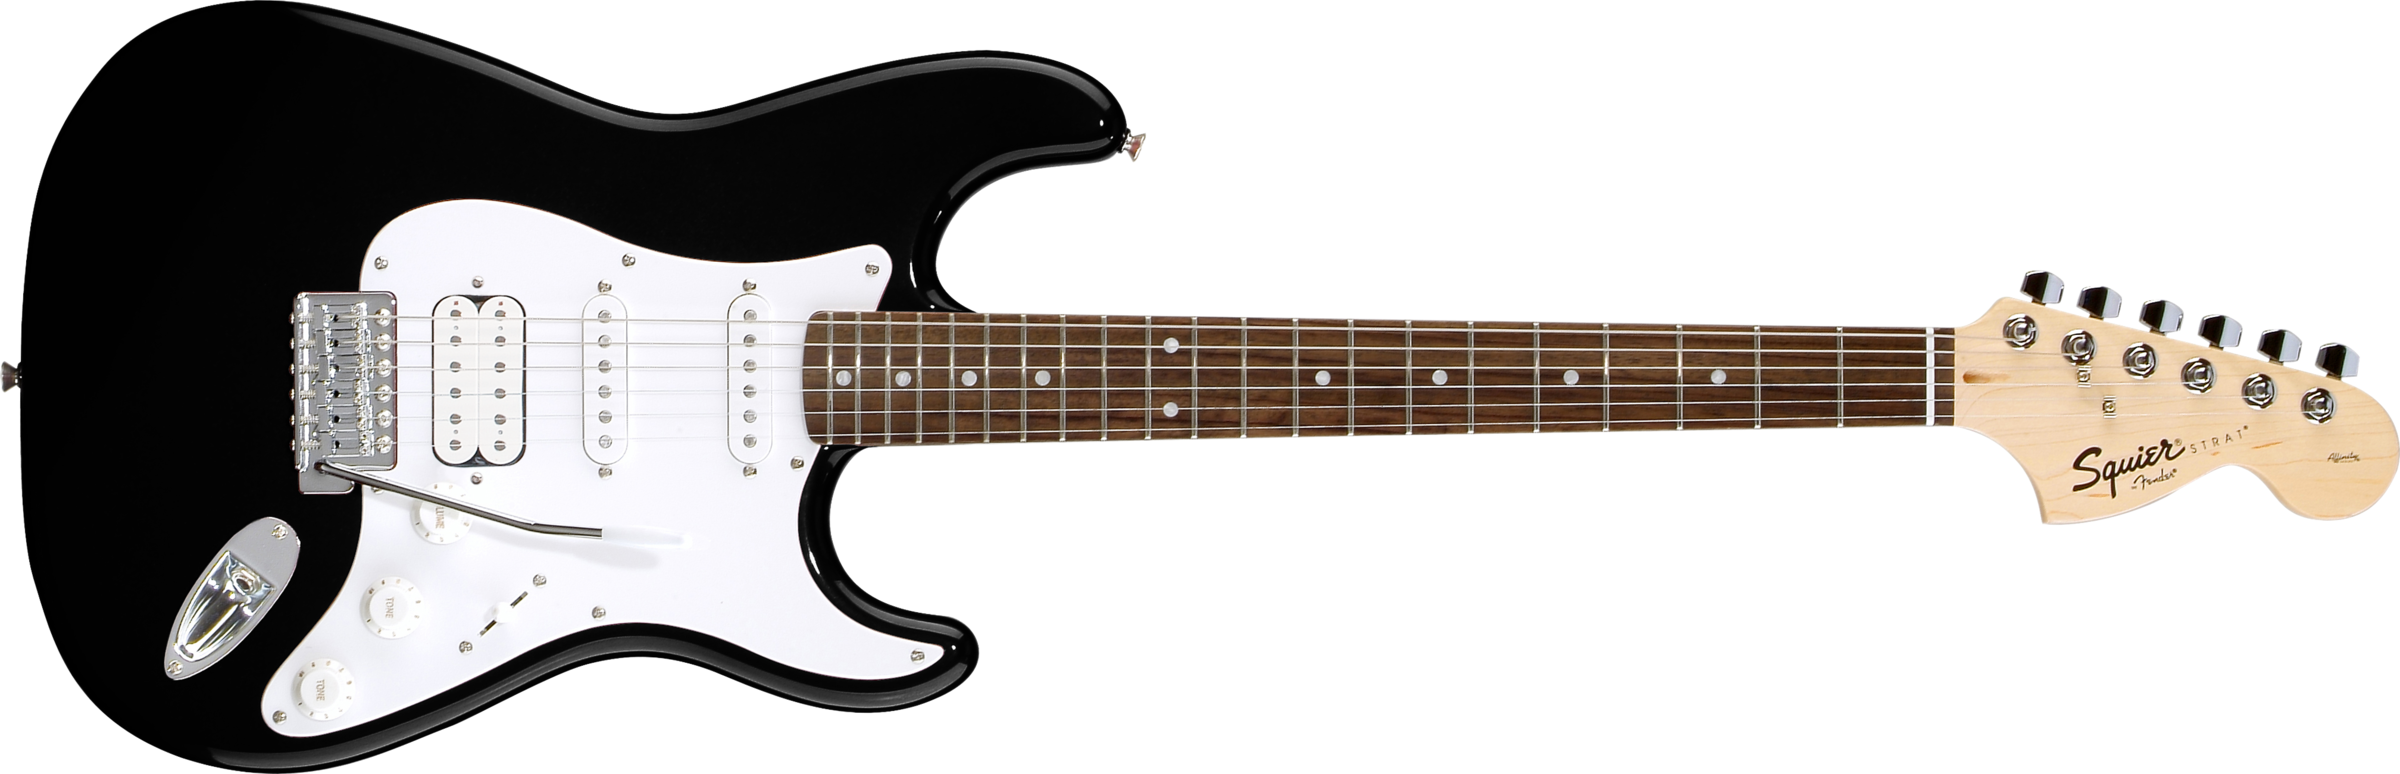 affinity series stratocaster hss affinity series squier by fender. Black Bedroom Furniture Sets. Home Design Ideas